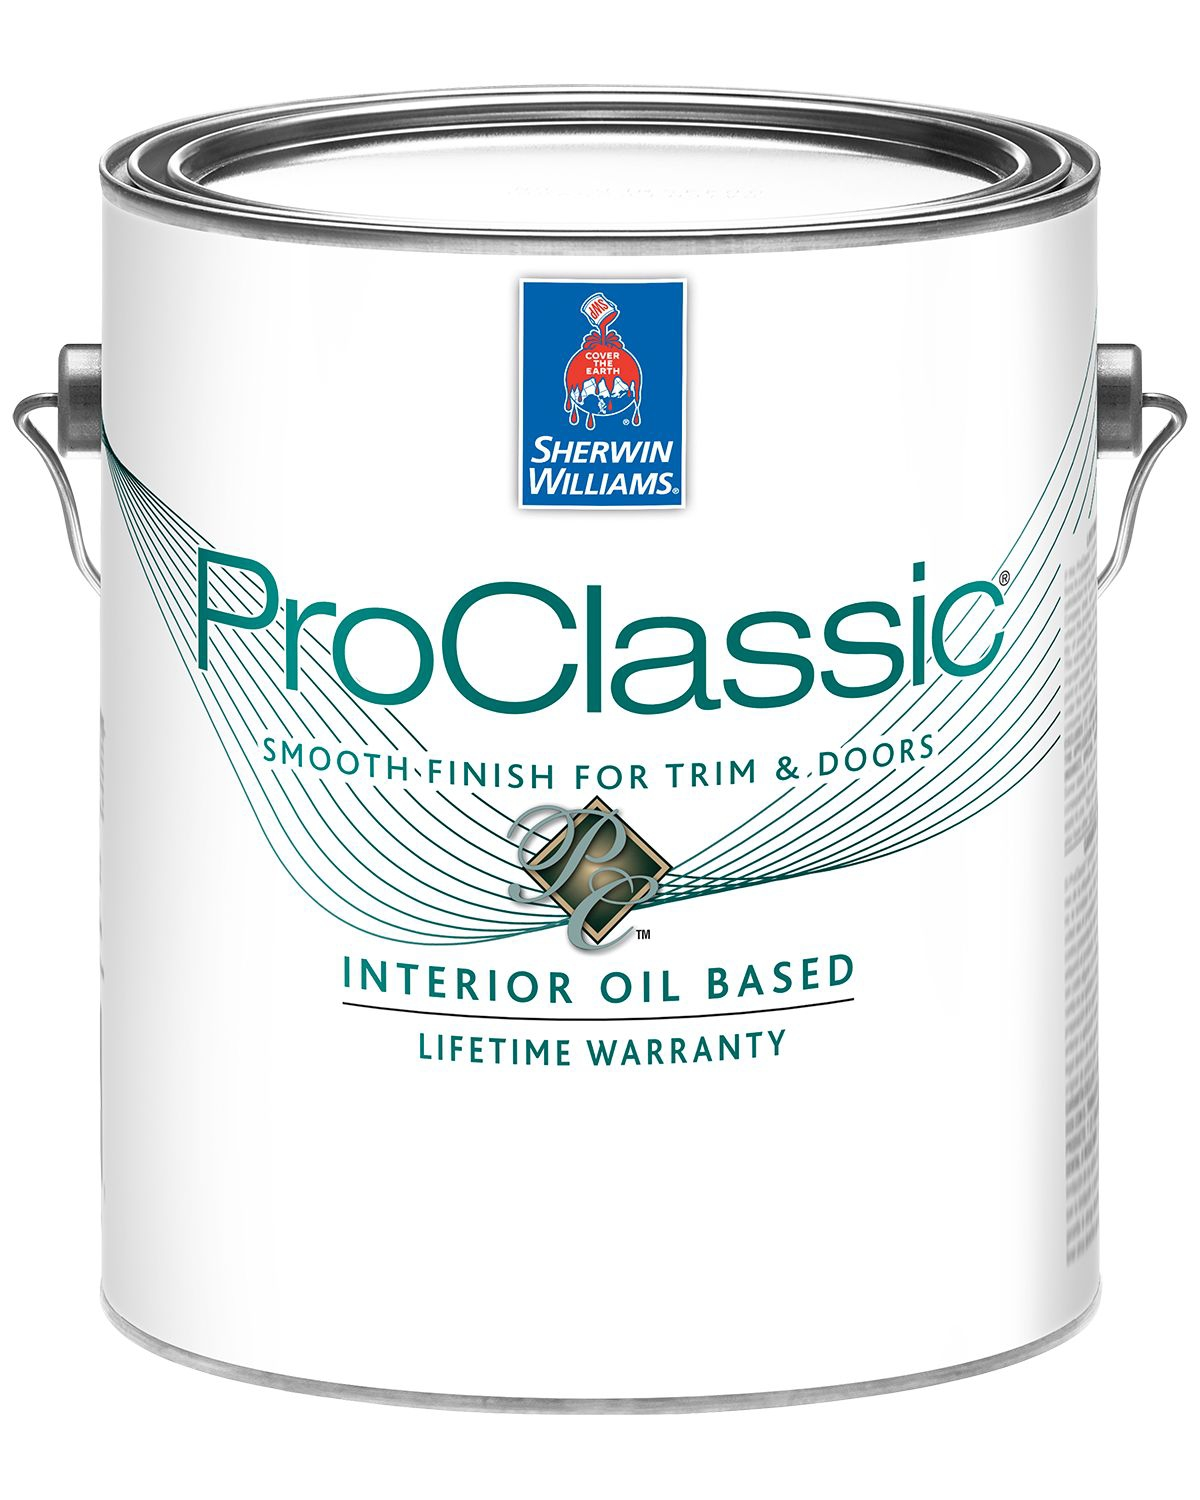 Sherwin Williams Pro Classic Paint Reviews Droughtrelief Org